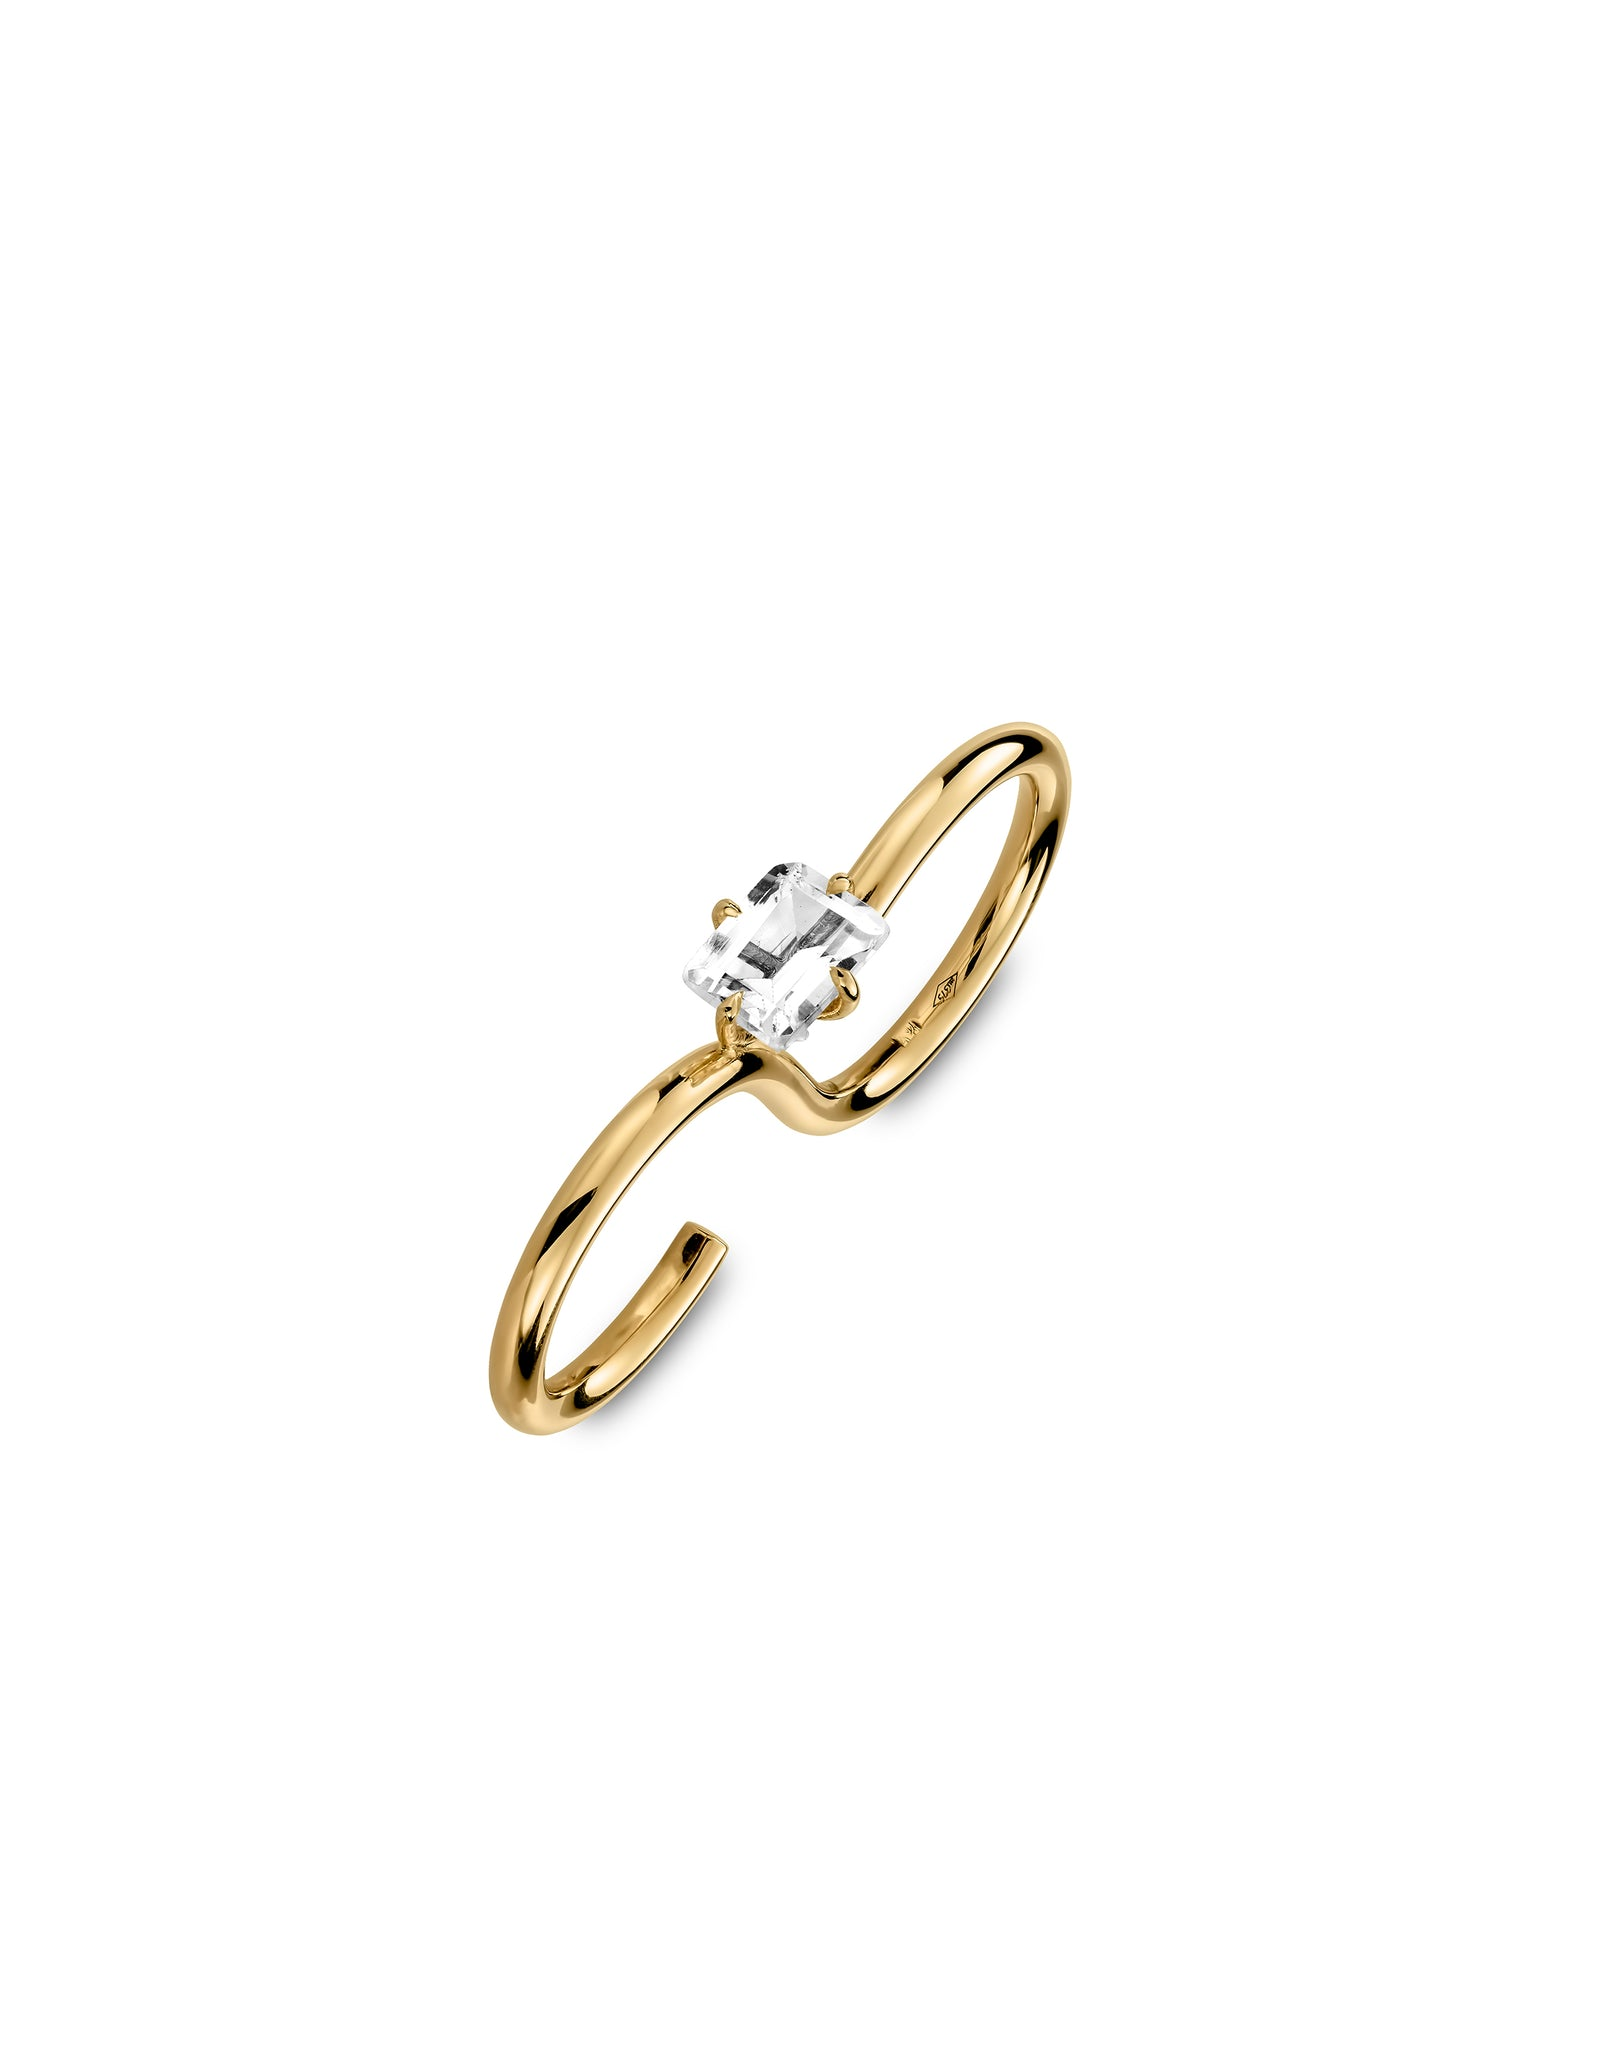 Double ring 9K gold Topaz - Signature double ring topaz - Nayestones